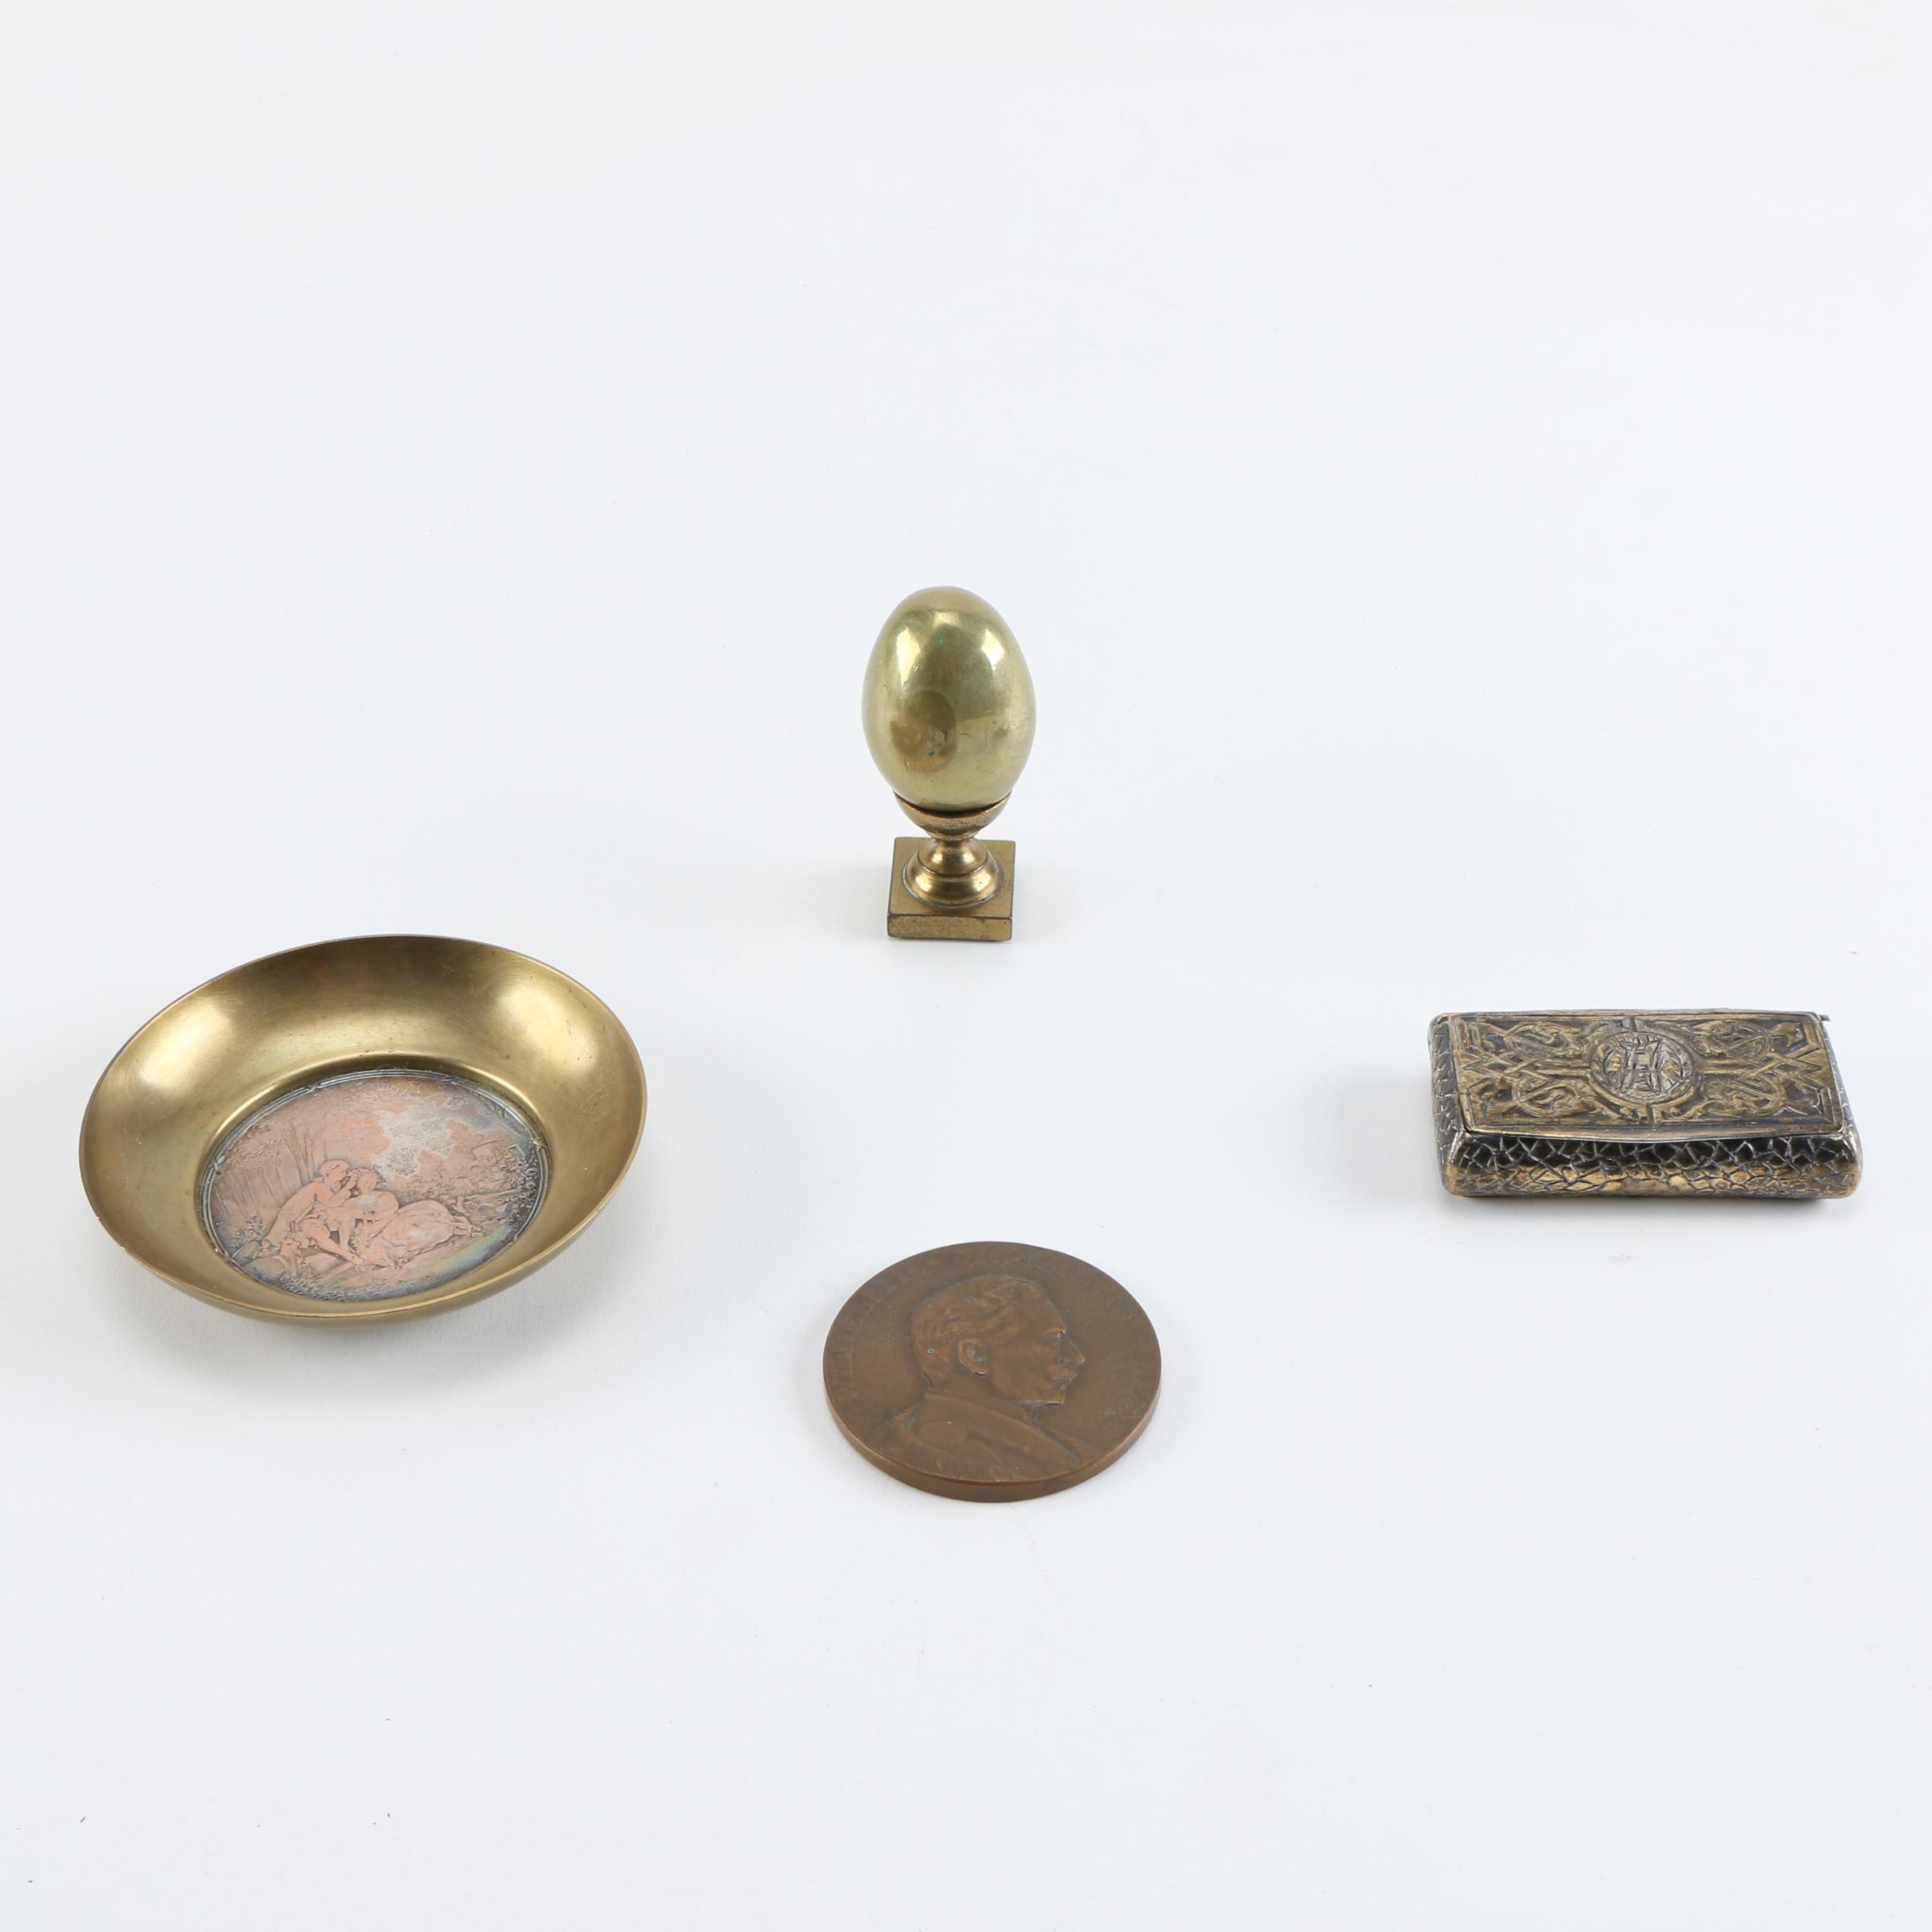 Vintage Decorative Objects With Antique Snuff Box